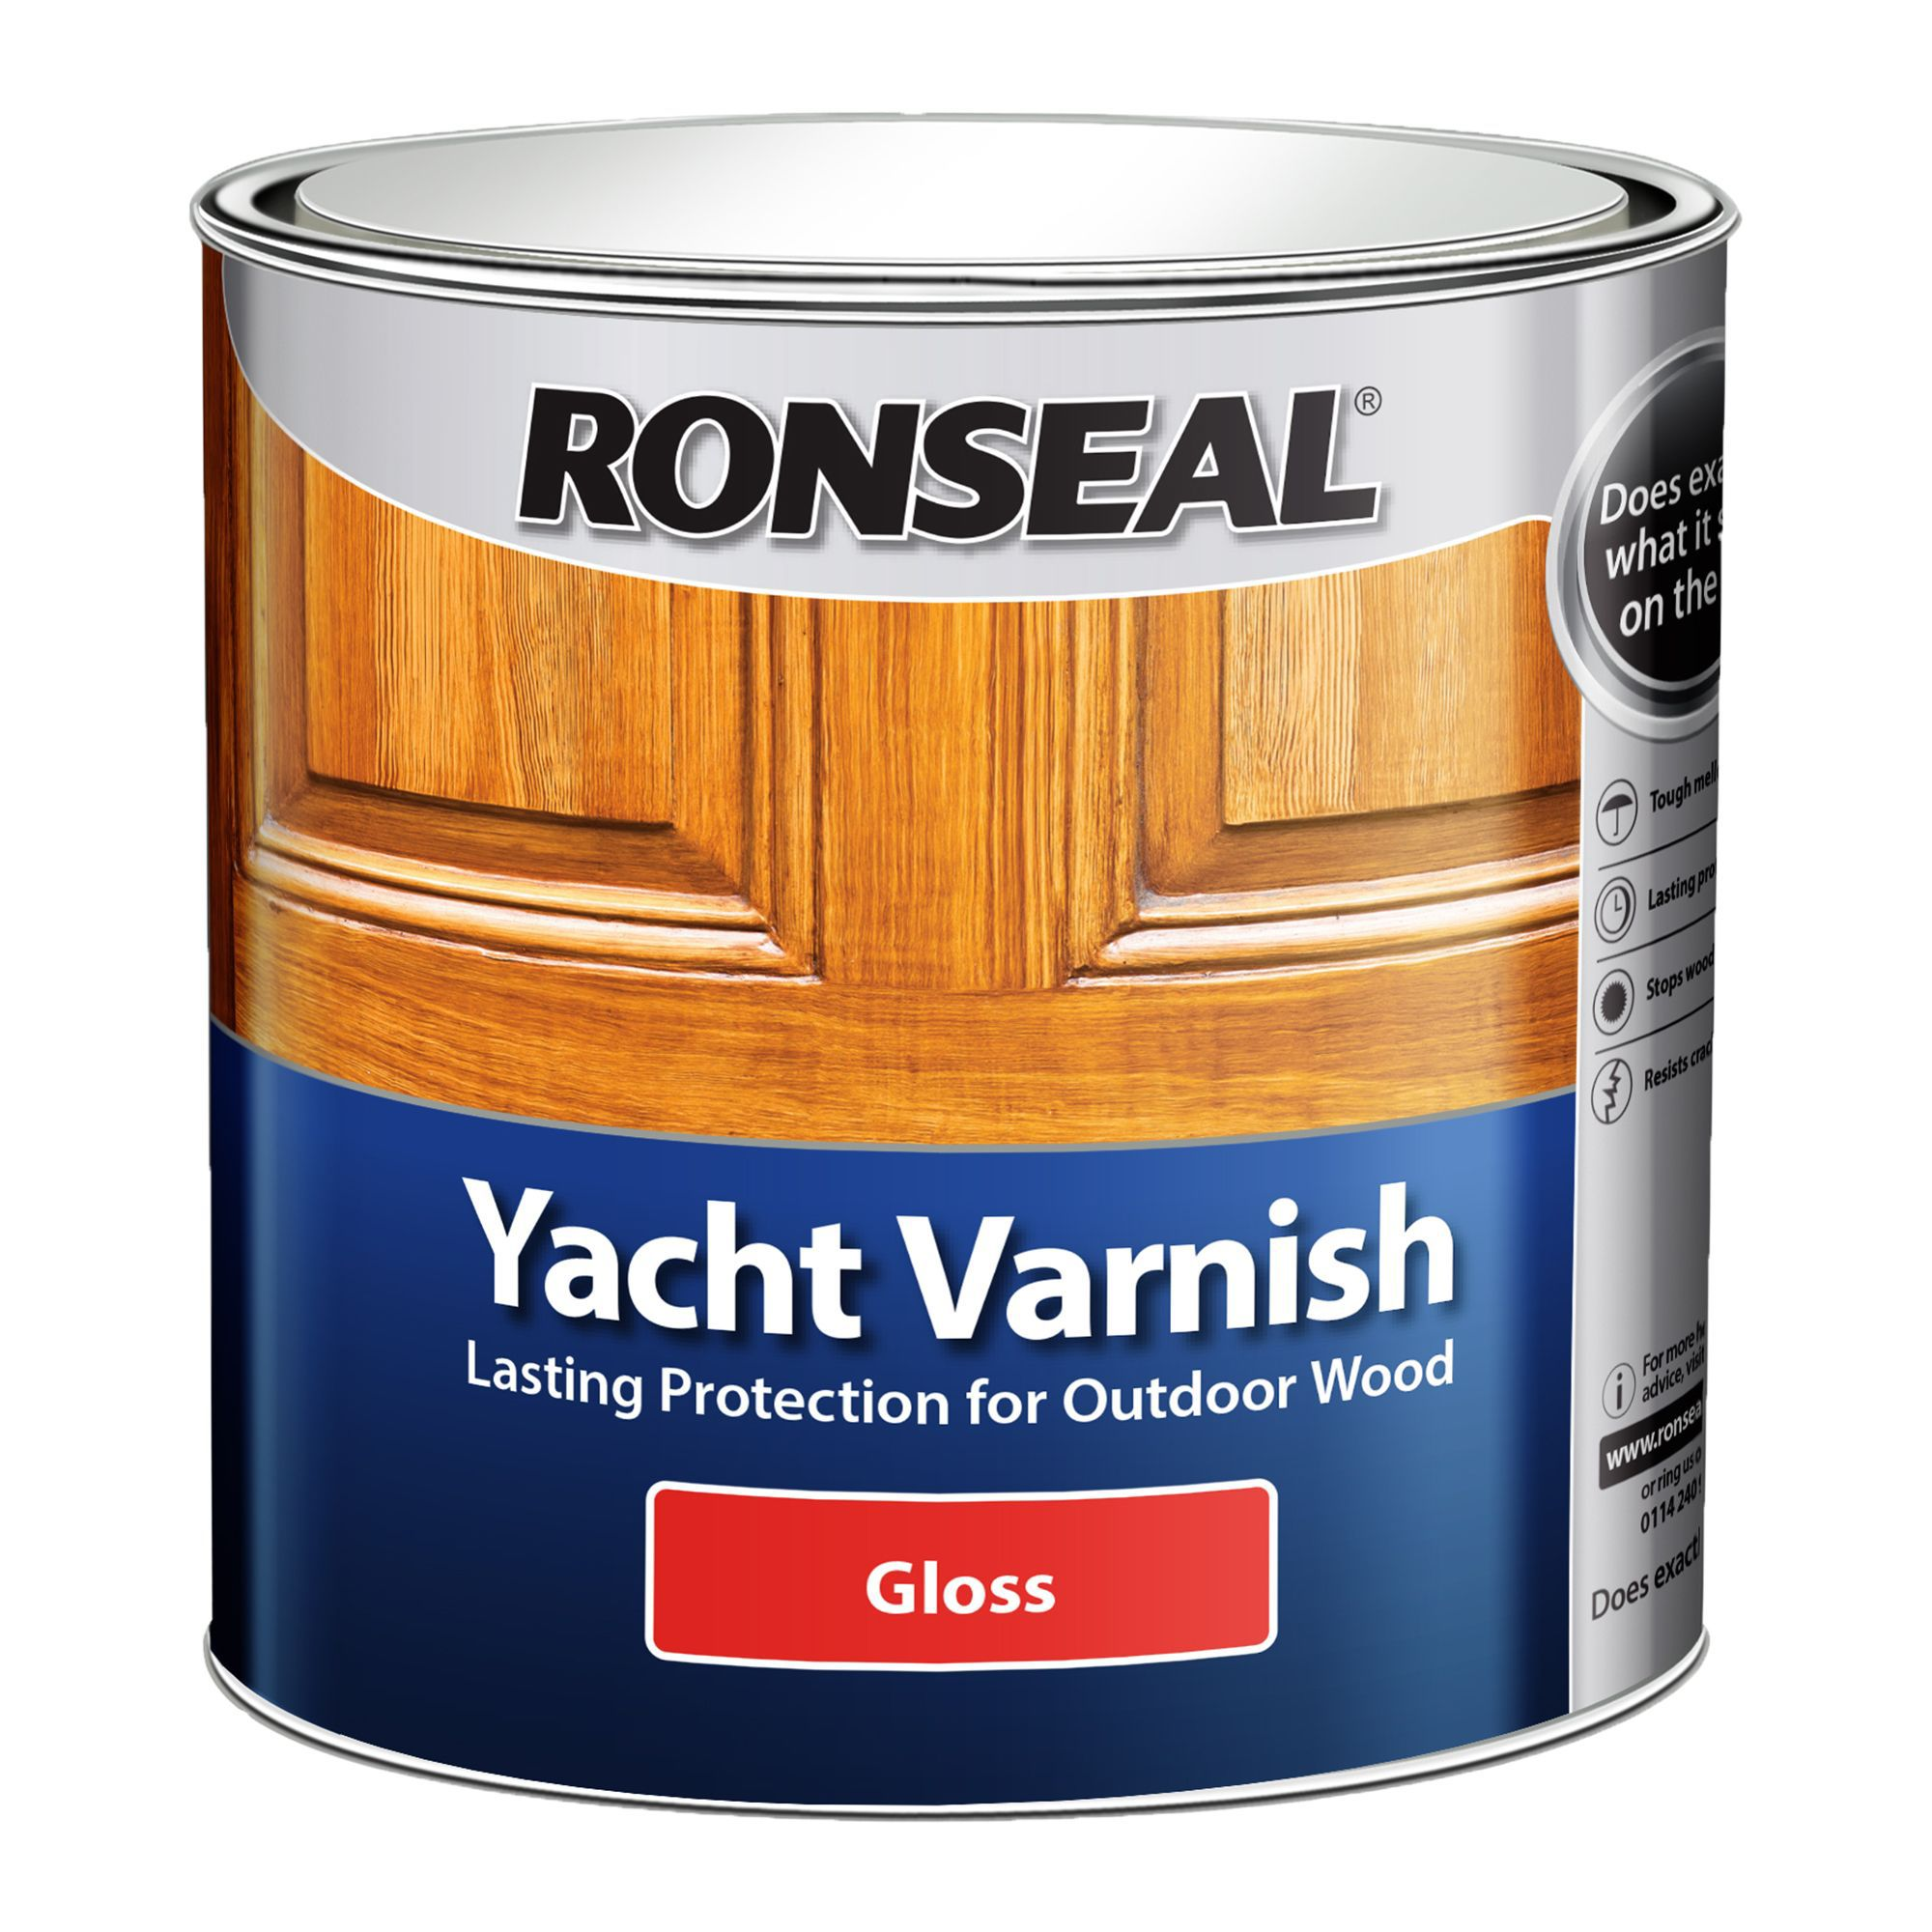 Ronseal Gloss Yacht Varnish 2500ml Departments Tradepoint